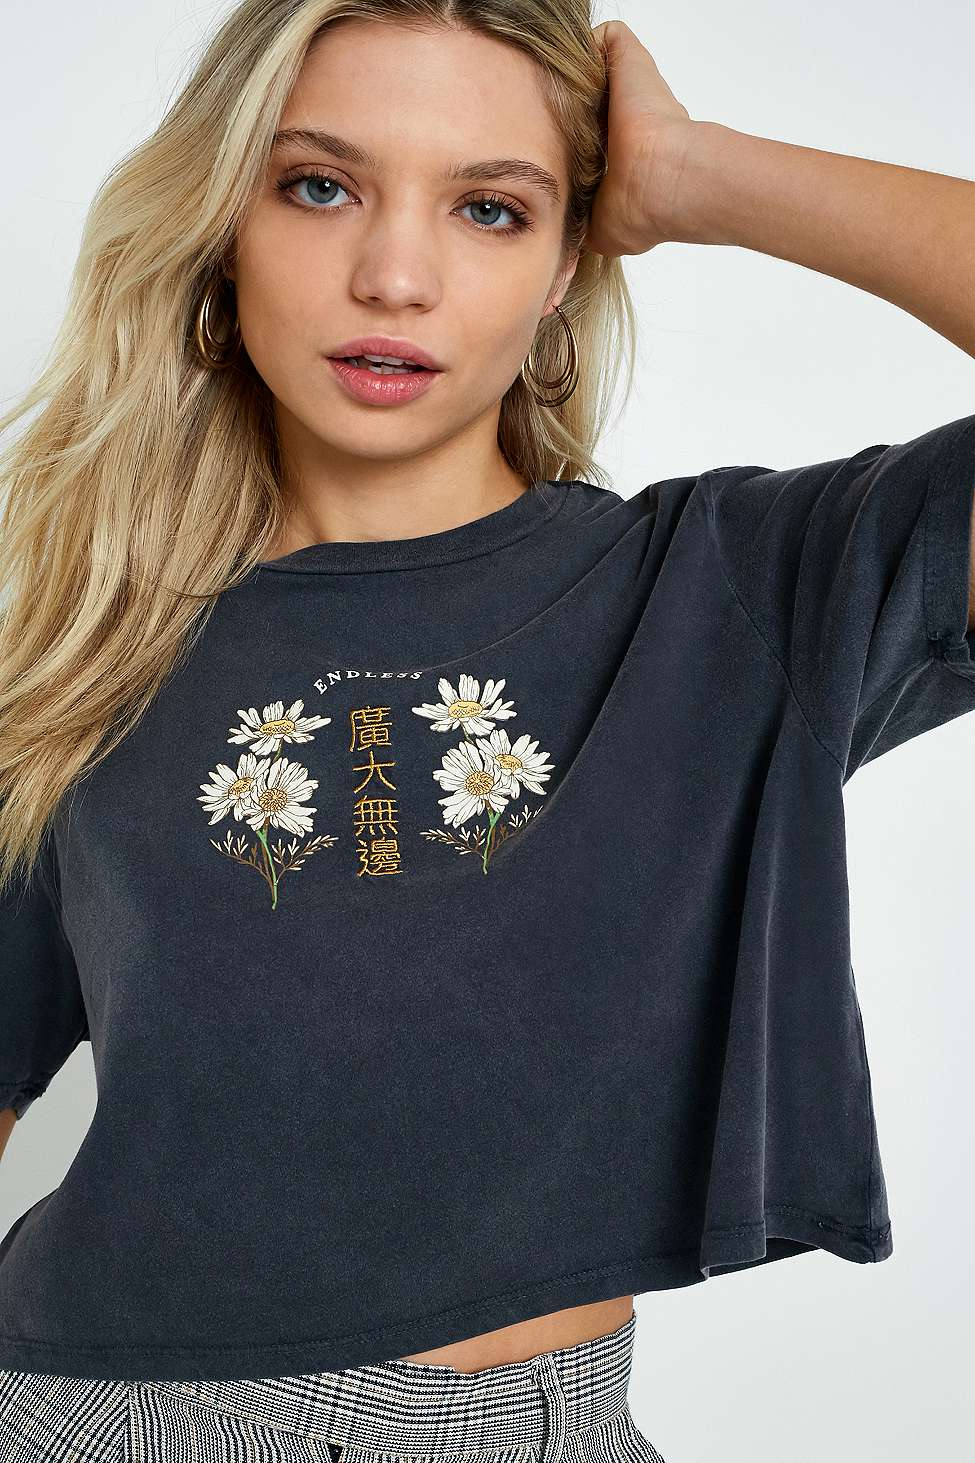 UO Floral Embroidered Endless T-Shirt, Dark Grey